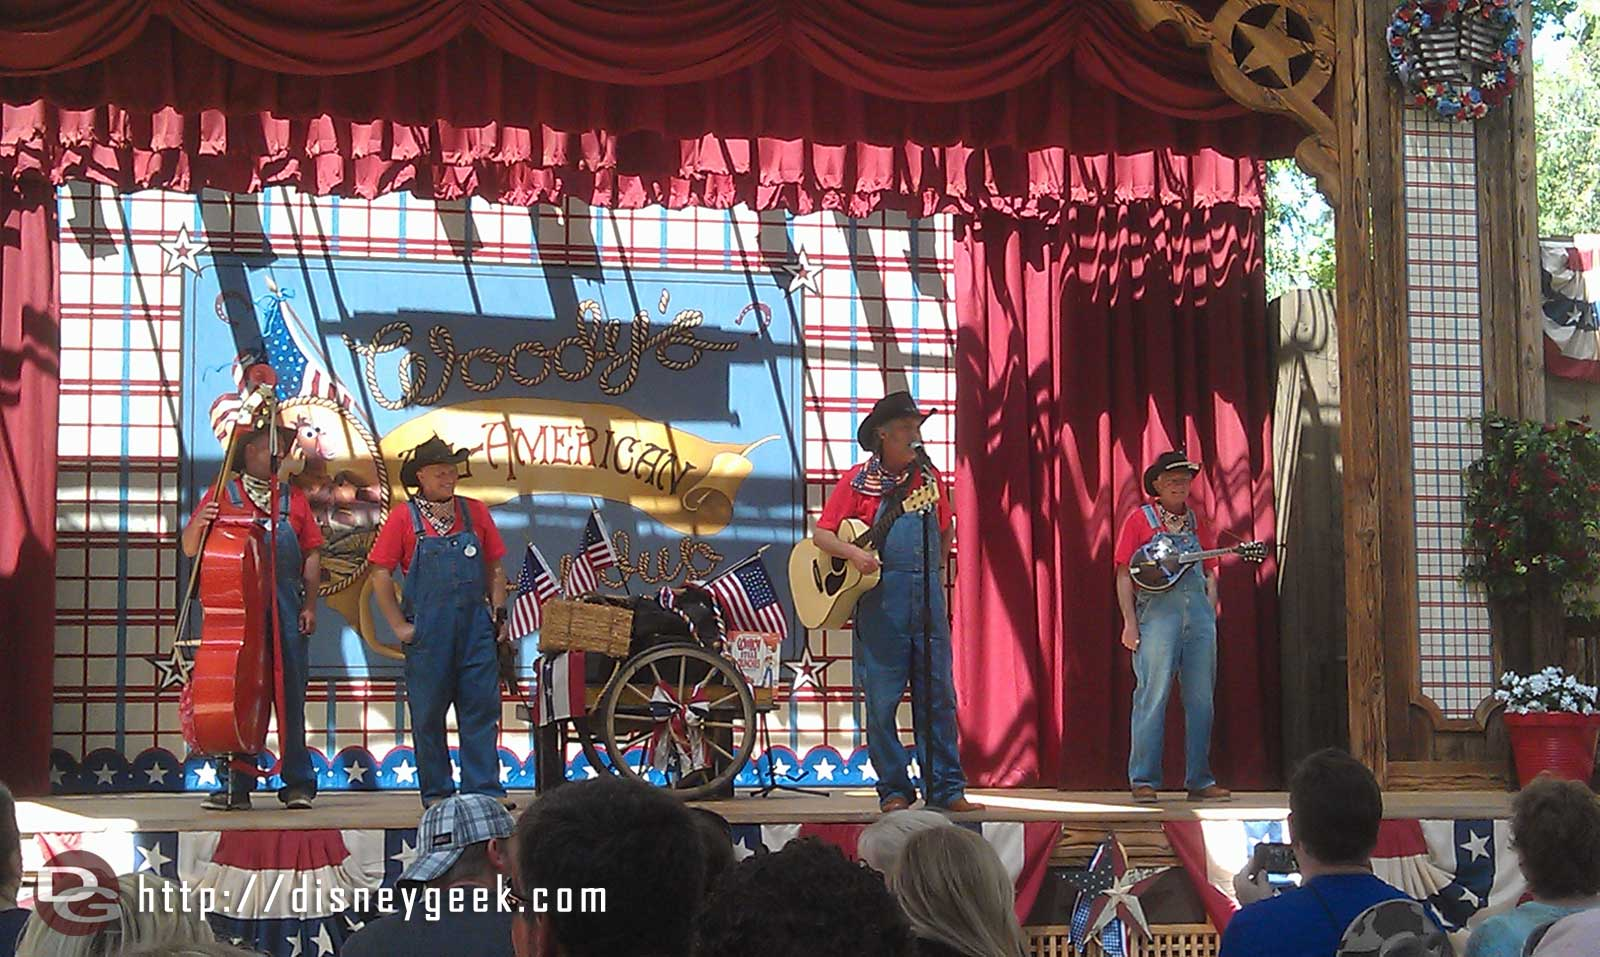 Billy Hill and the Hillbillies are performing at the Roundup.